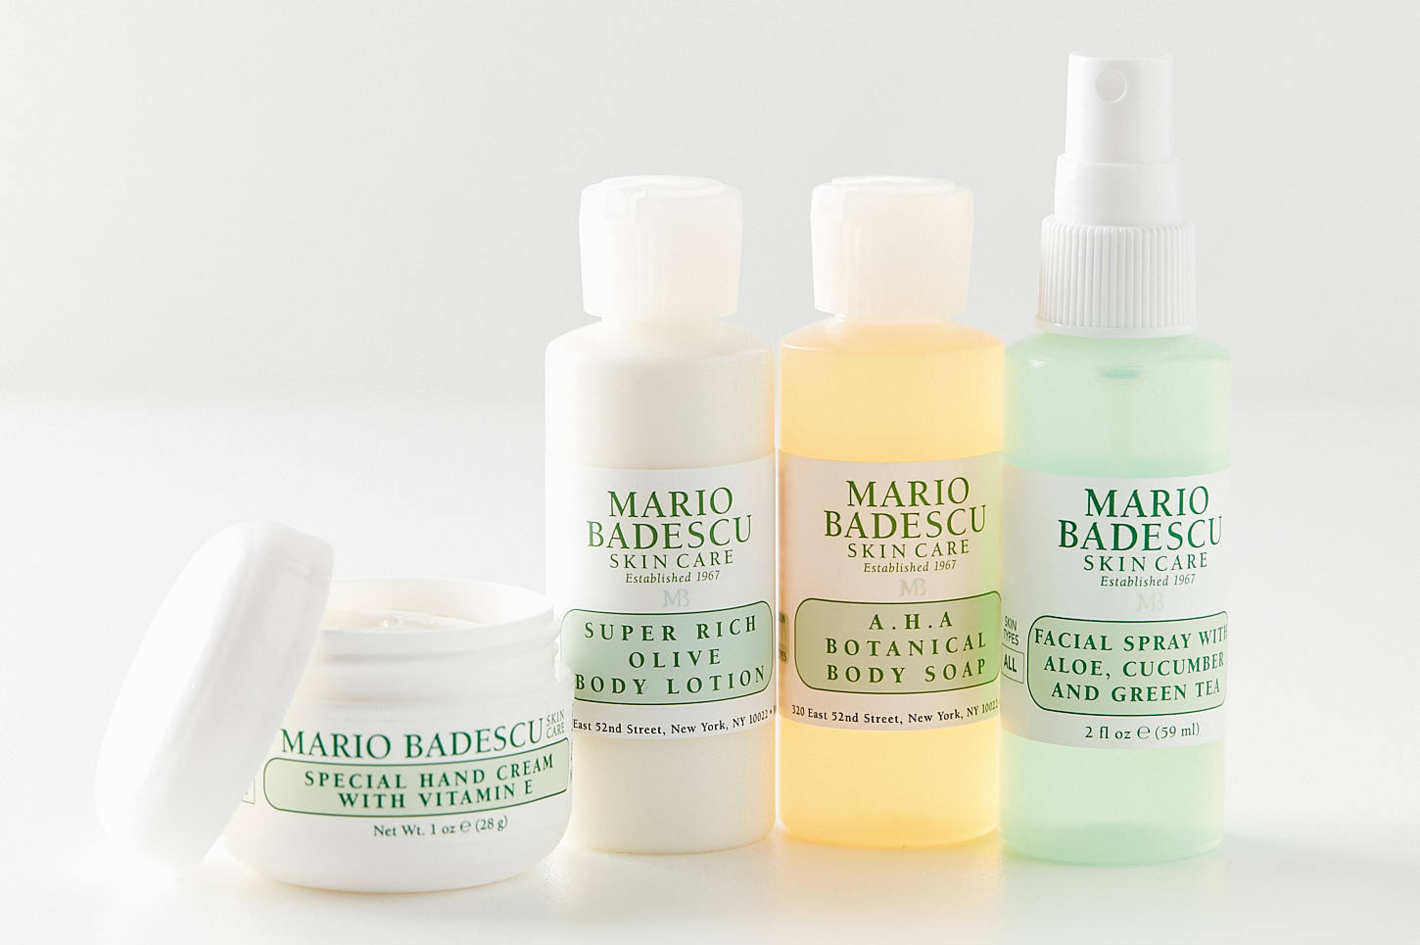 Mario Badescu UO Exclusive Face + Body Set